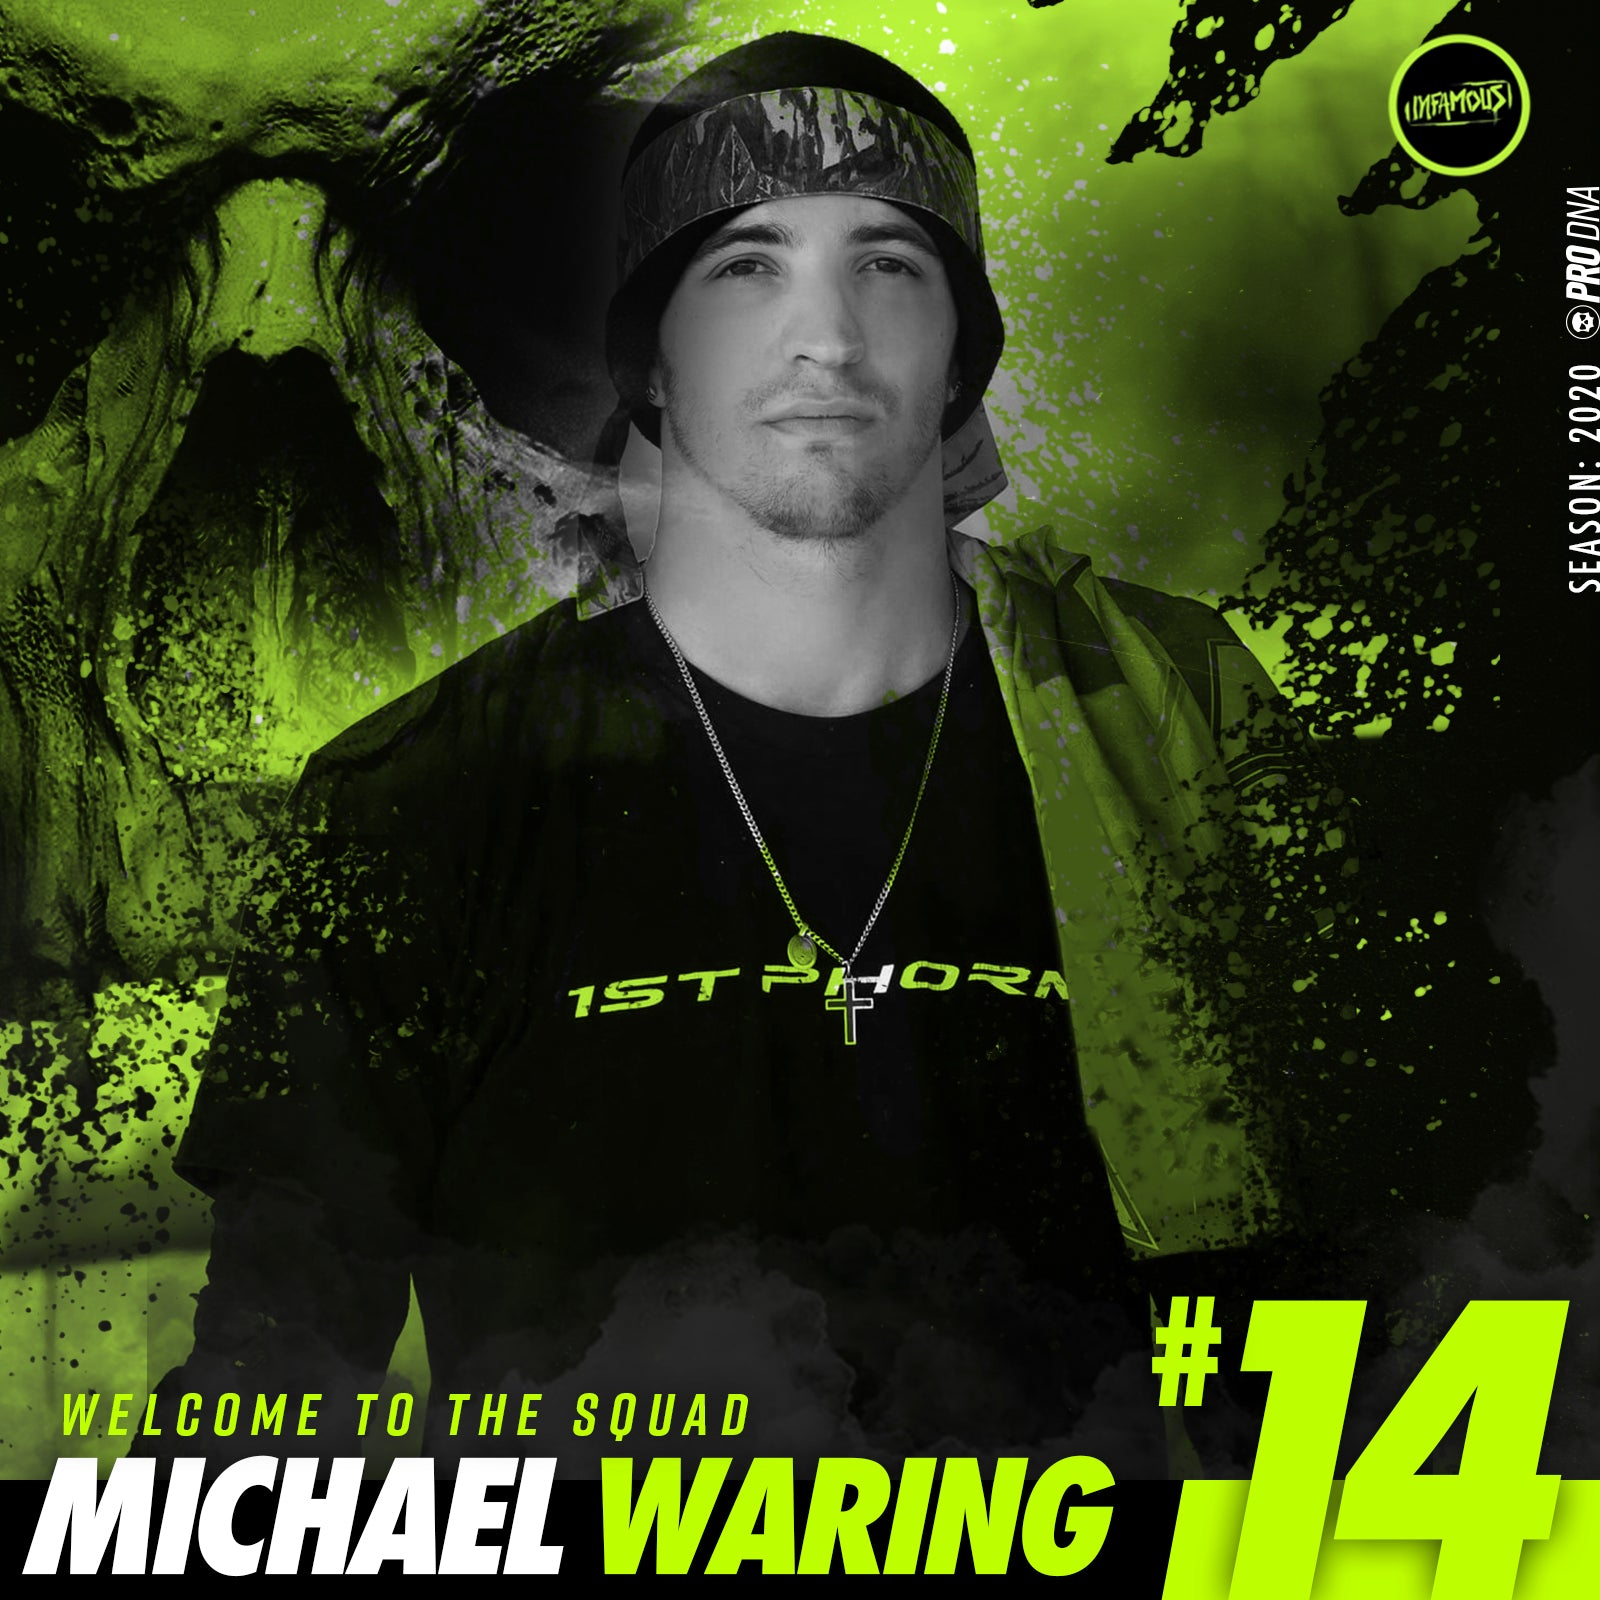 NEW PICKUP - Michael Waring to Infamous